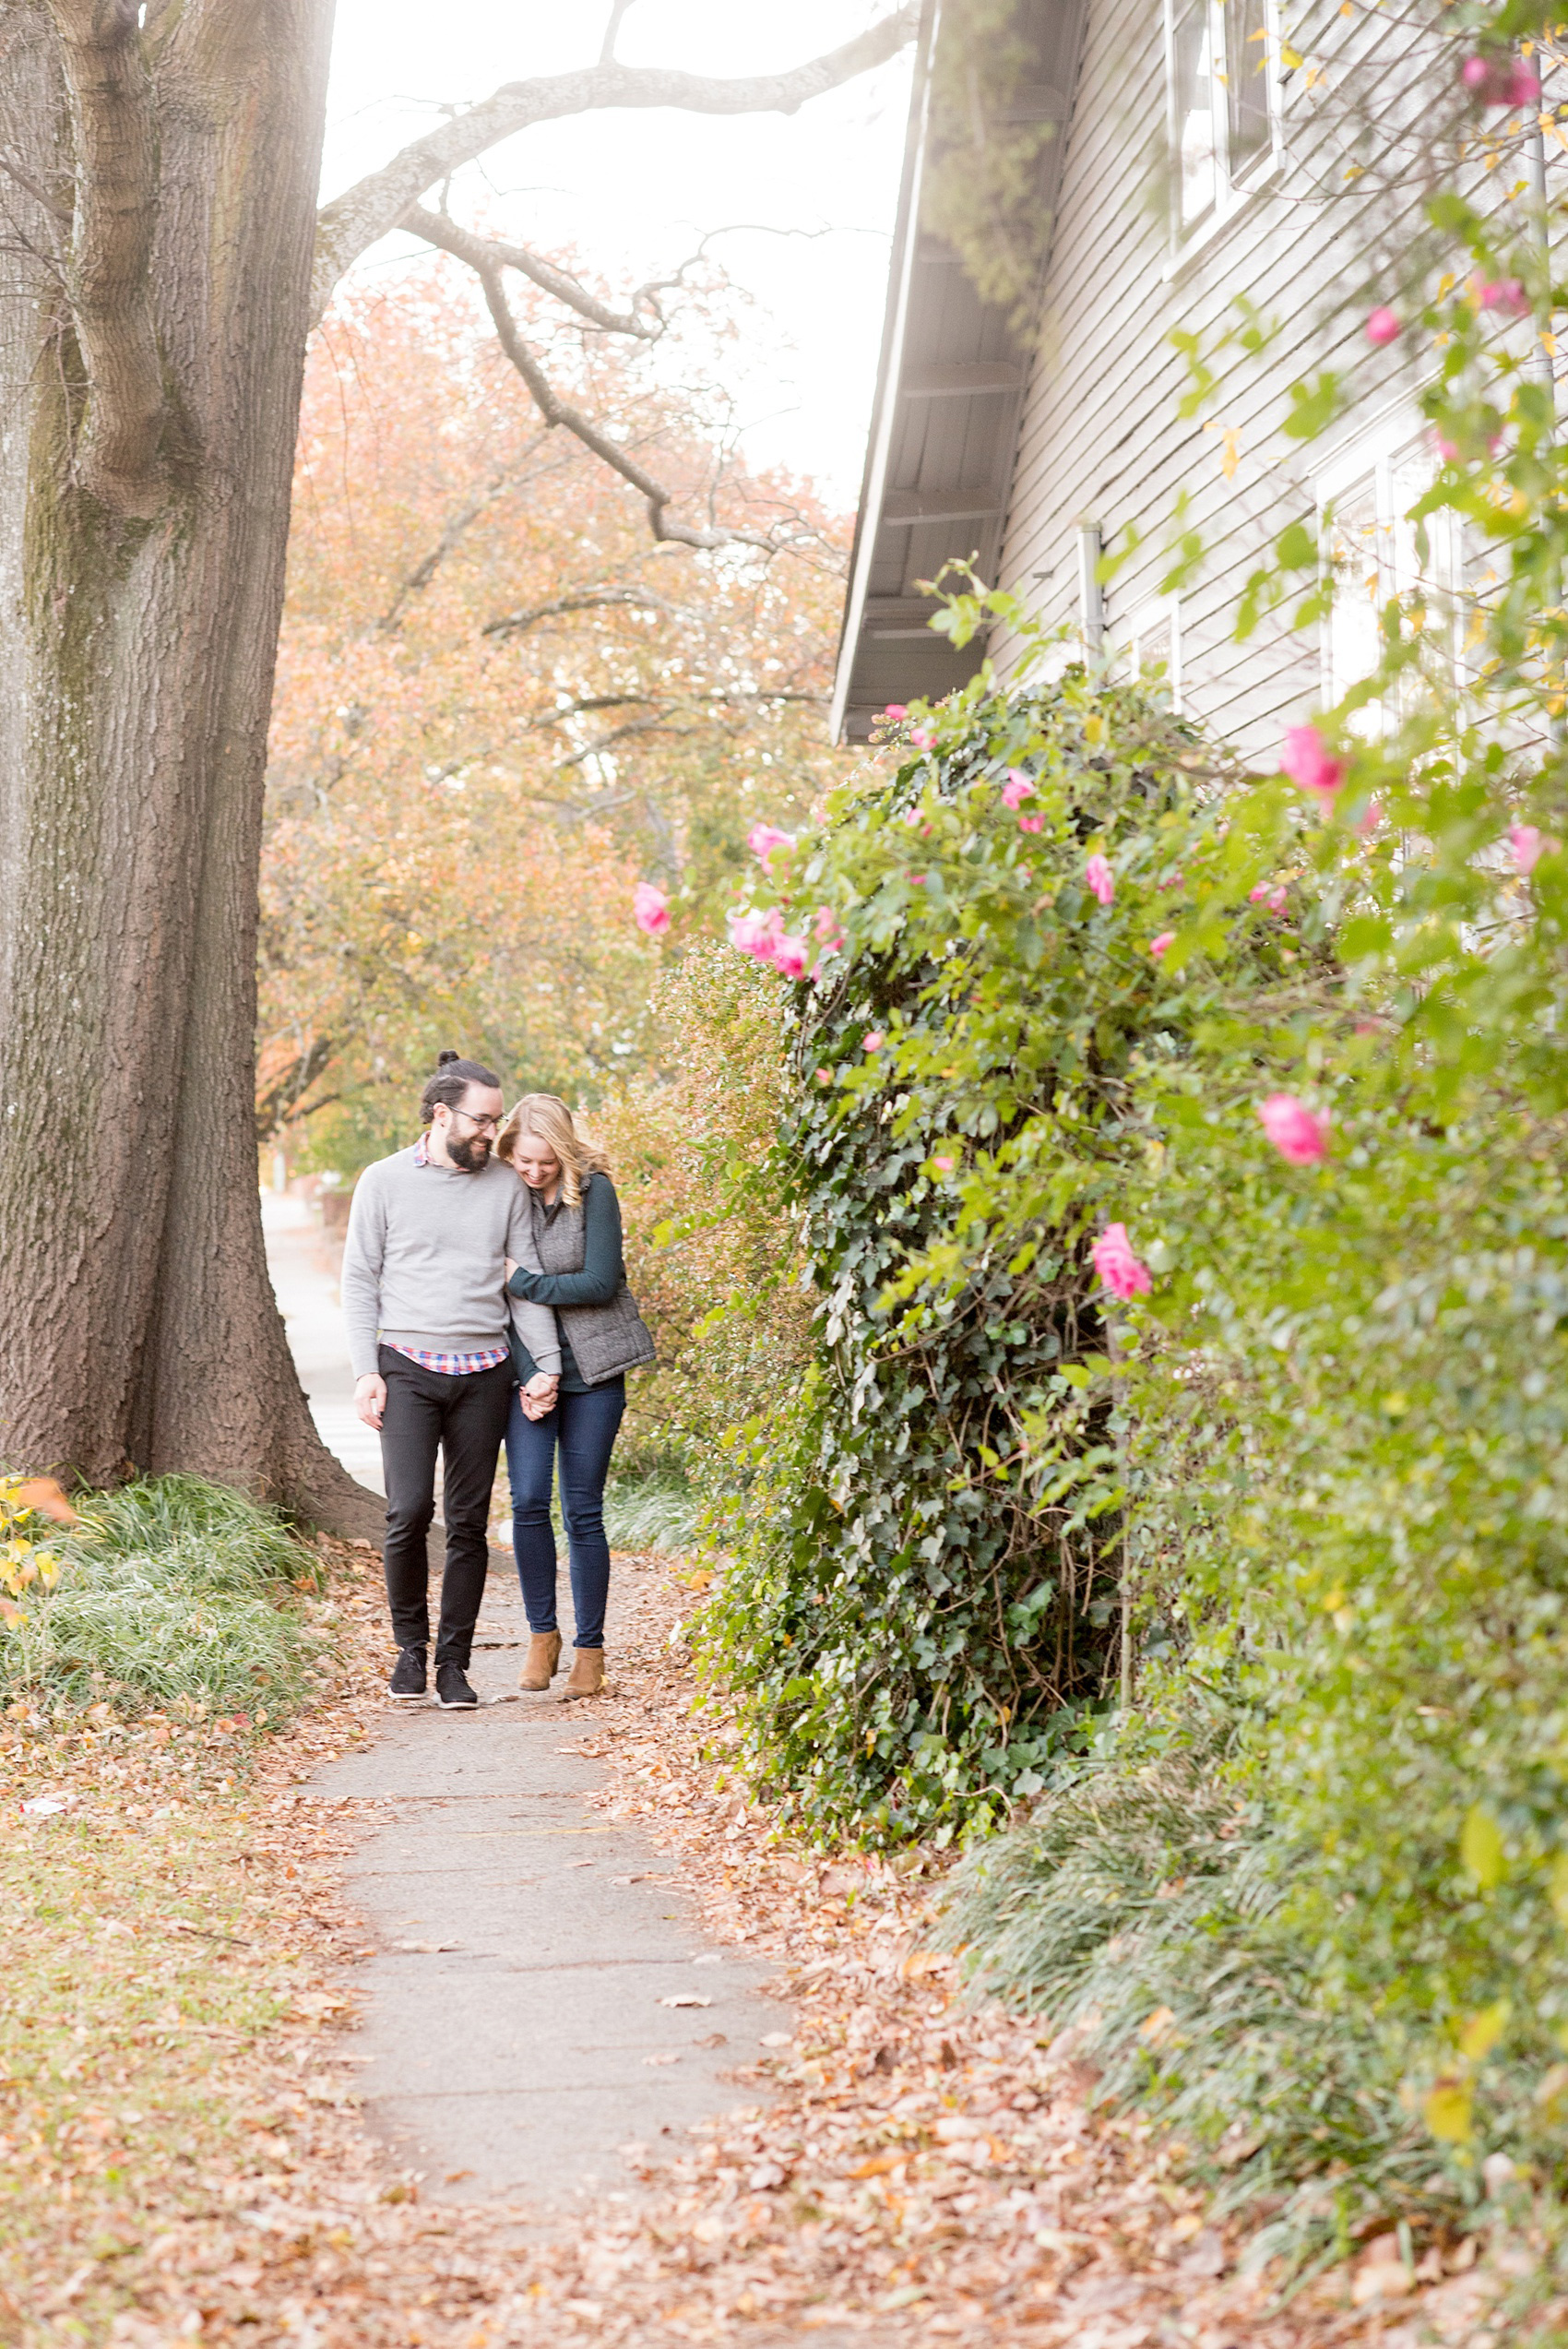 Mikkel Paige Photography photos of a downtown Durham engagement session amidst fall colors and pink rose bushes.